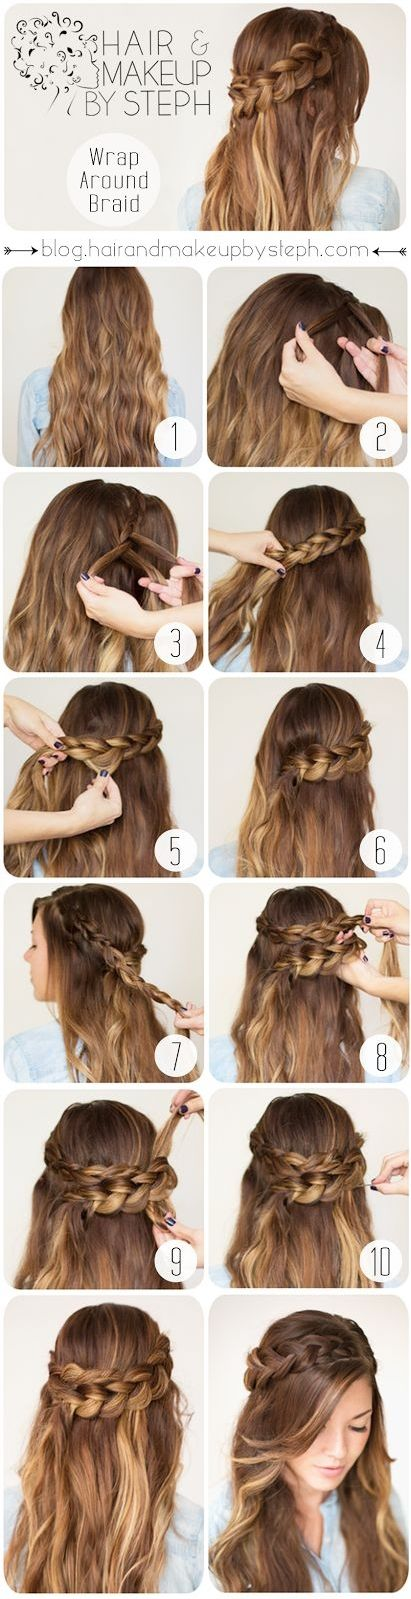 Enjoyable 1000 Ideas About Thick Hair Hairstyles On Pinterest Curling Hairstyles For Women Draintrainus